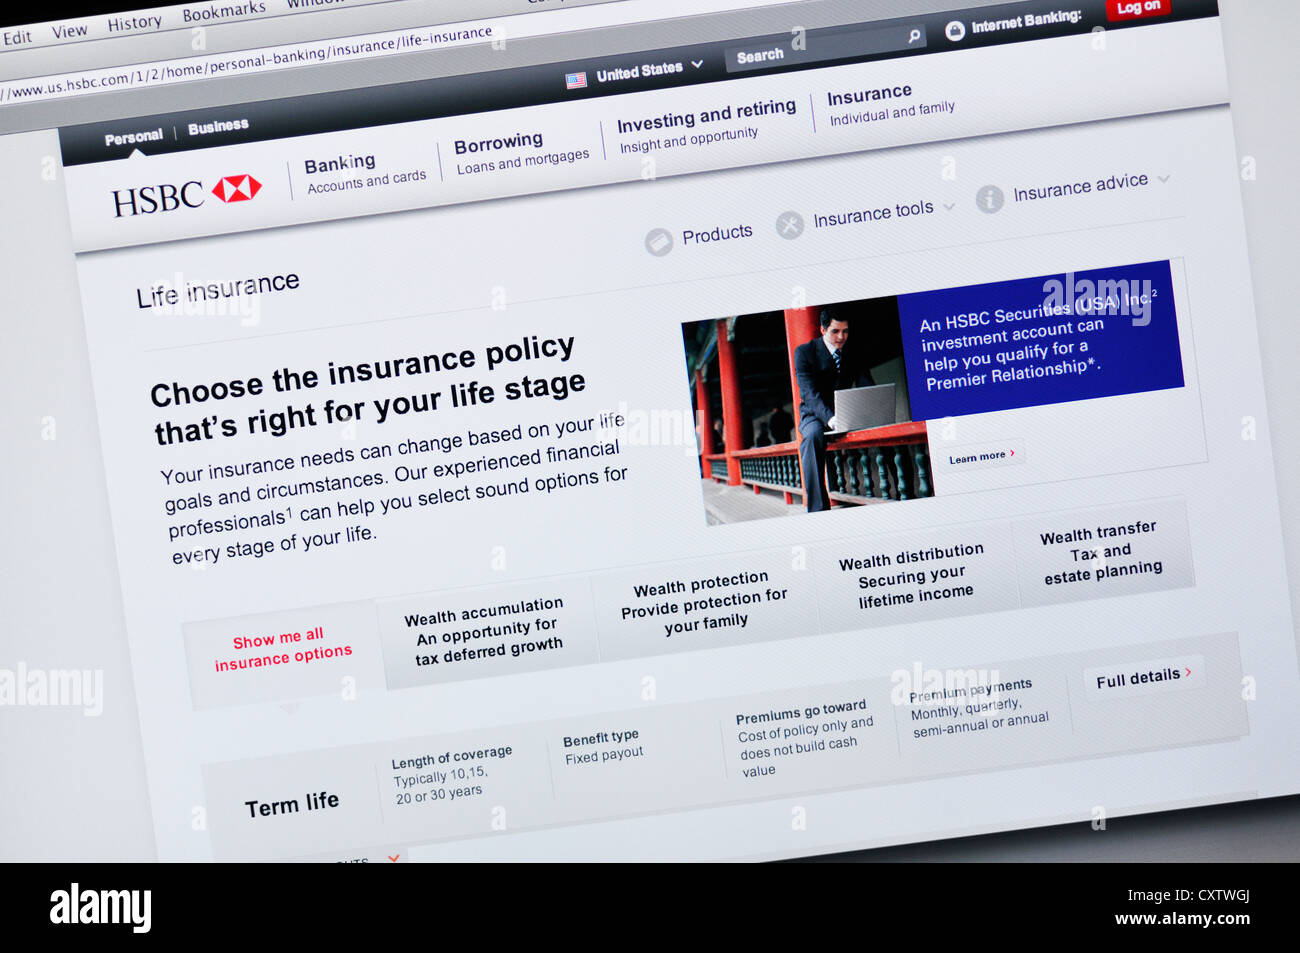 HSBC website - online banking and life insurance Stock Photo